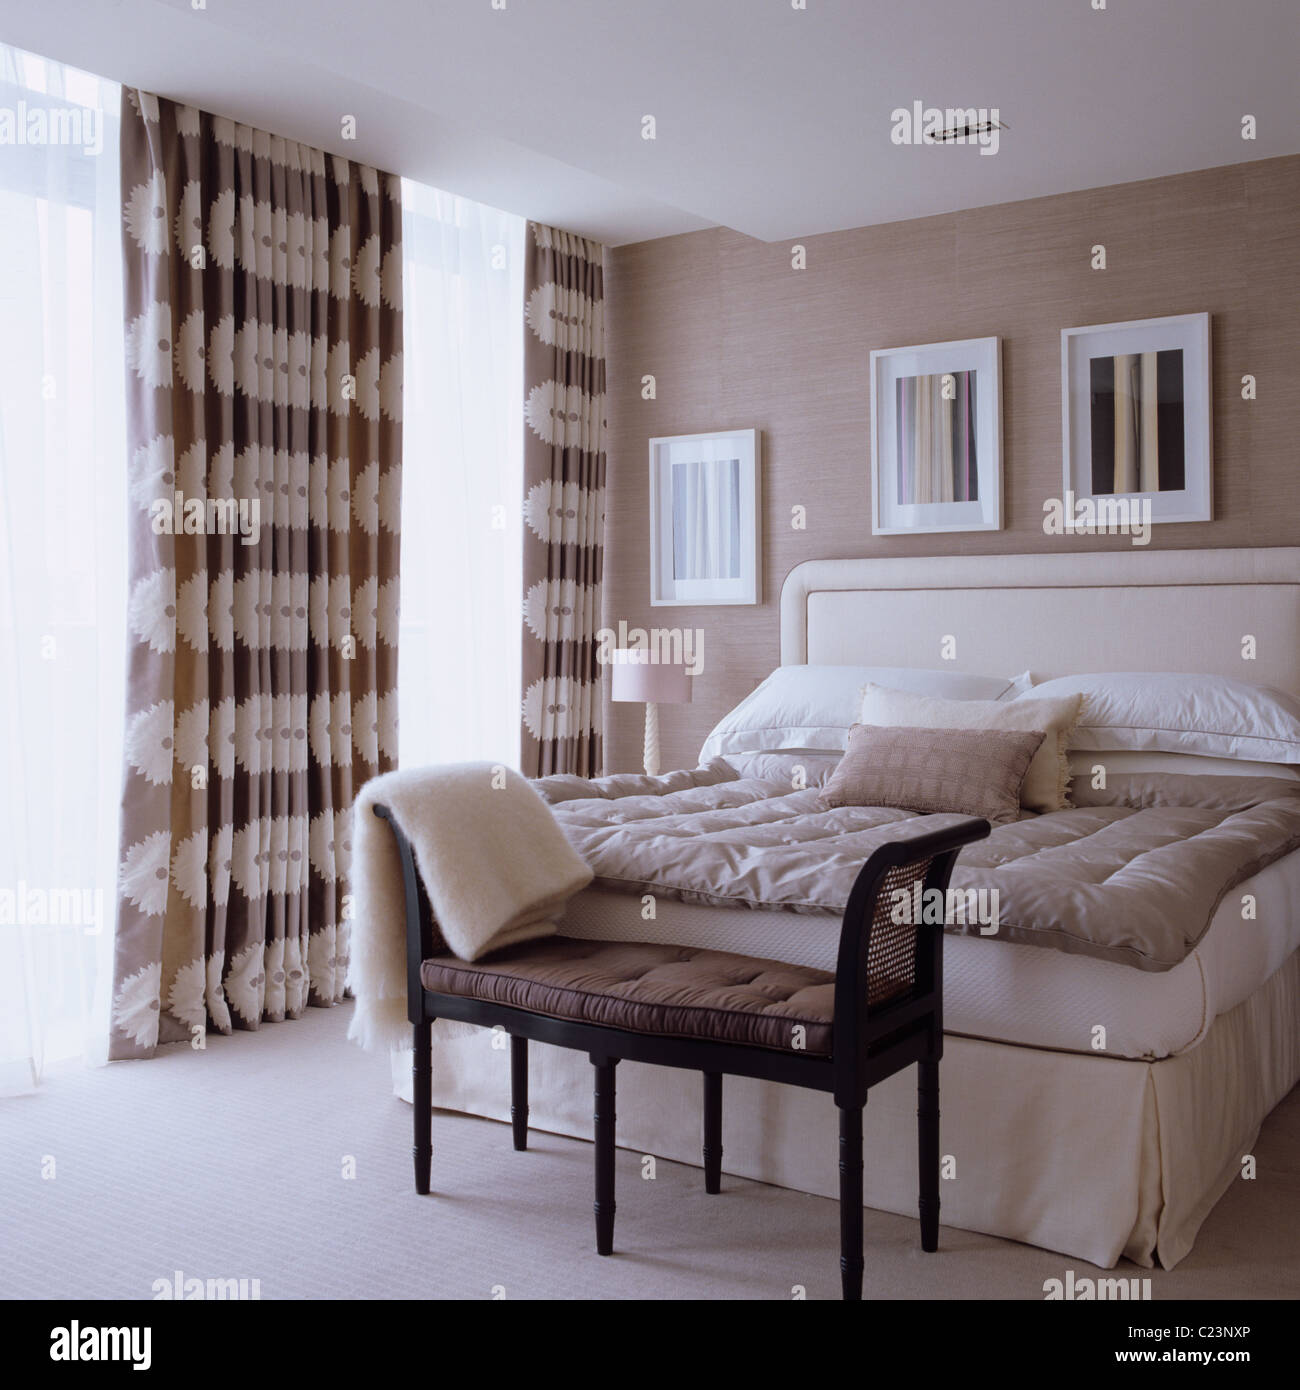 Double Bed In Bedroom Decorated In Neutral Tones With Interior Design Stock Photo Alamy